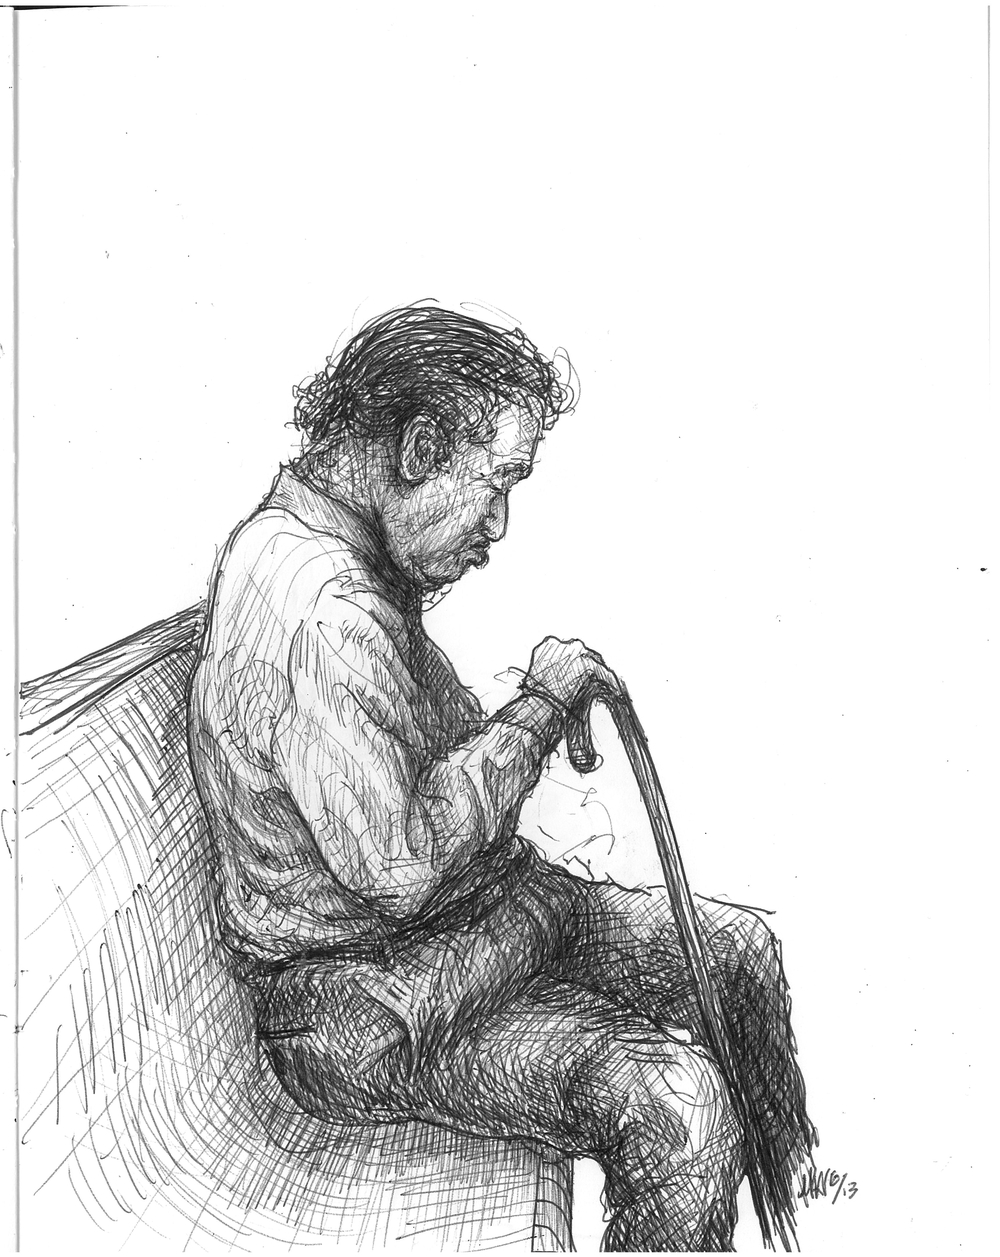 The Sleepy, (man with cane)